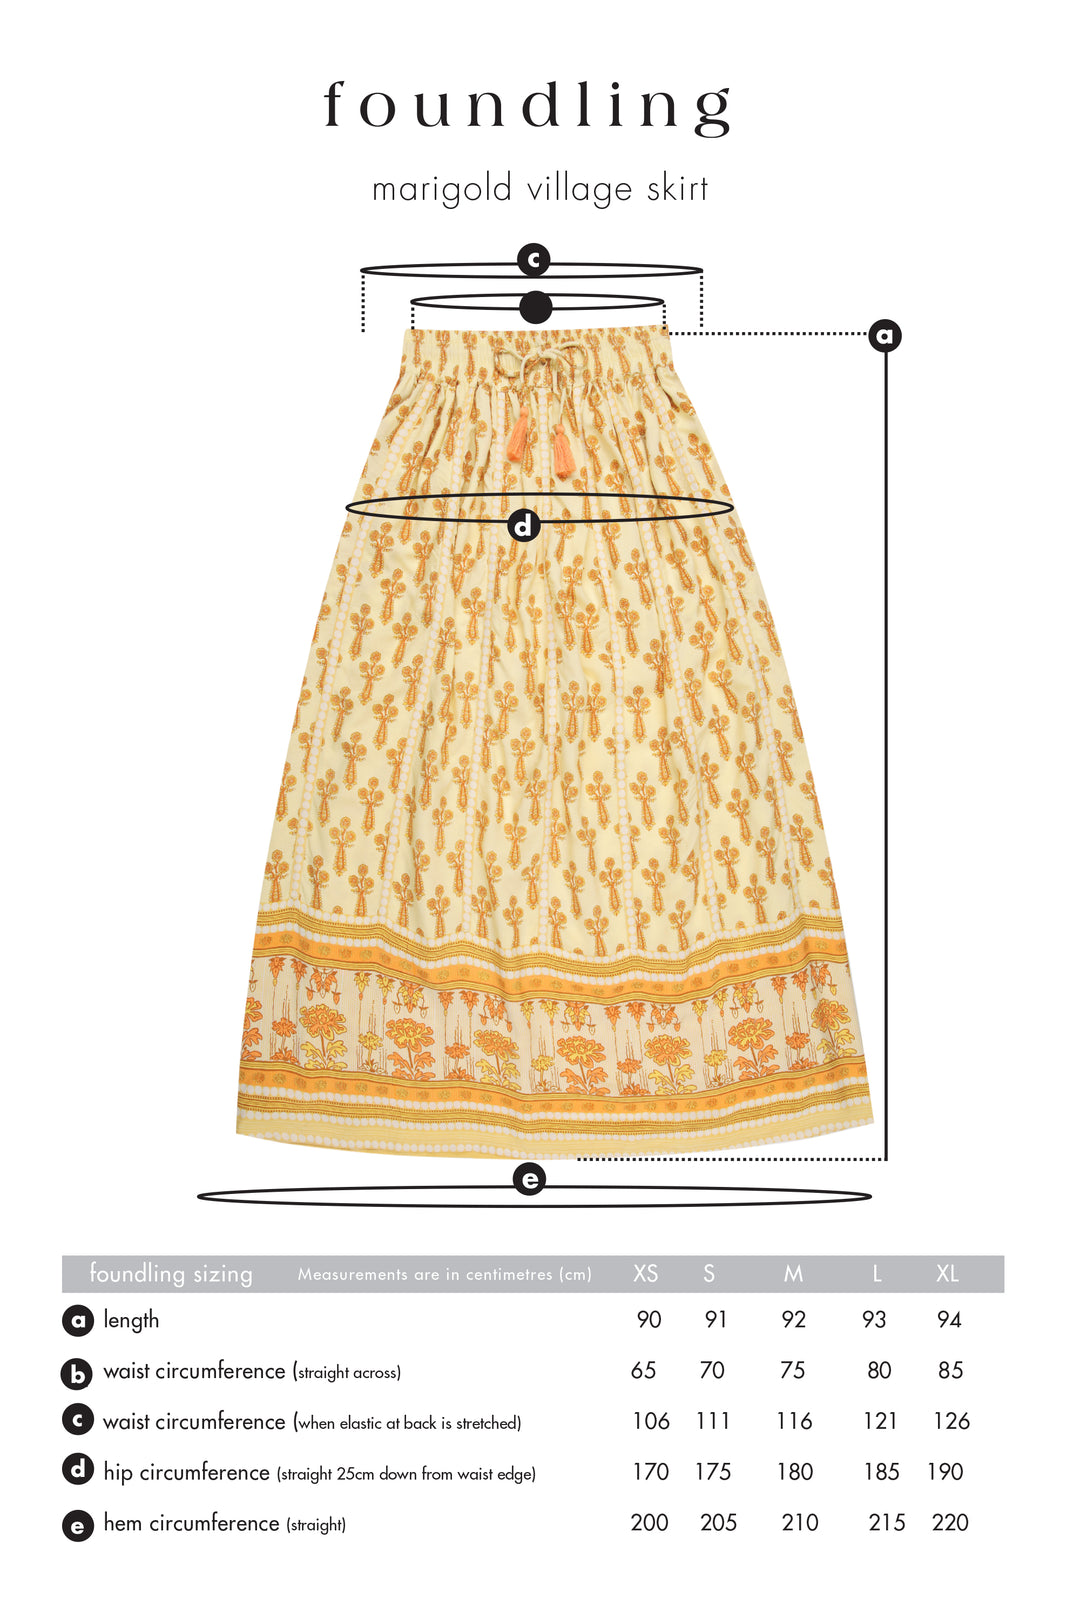 Marigold Village Skirt